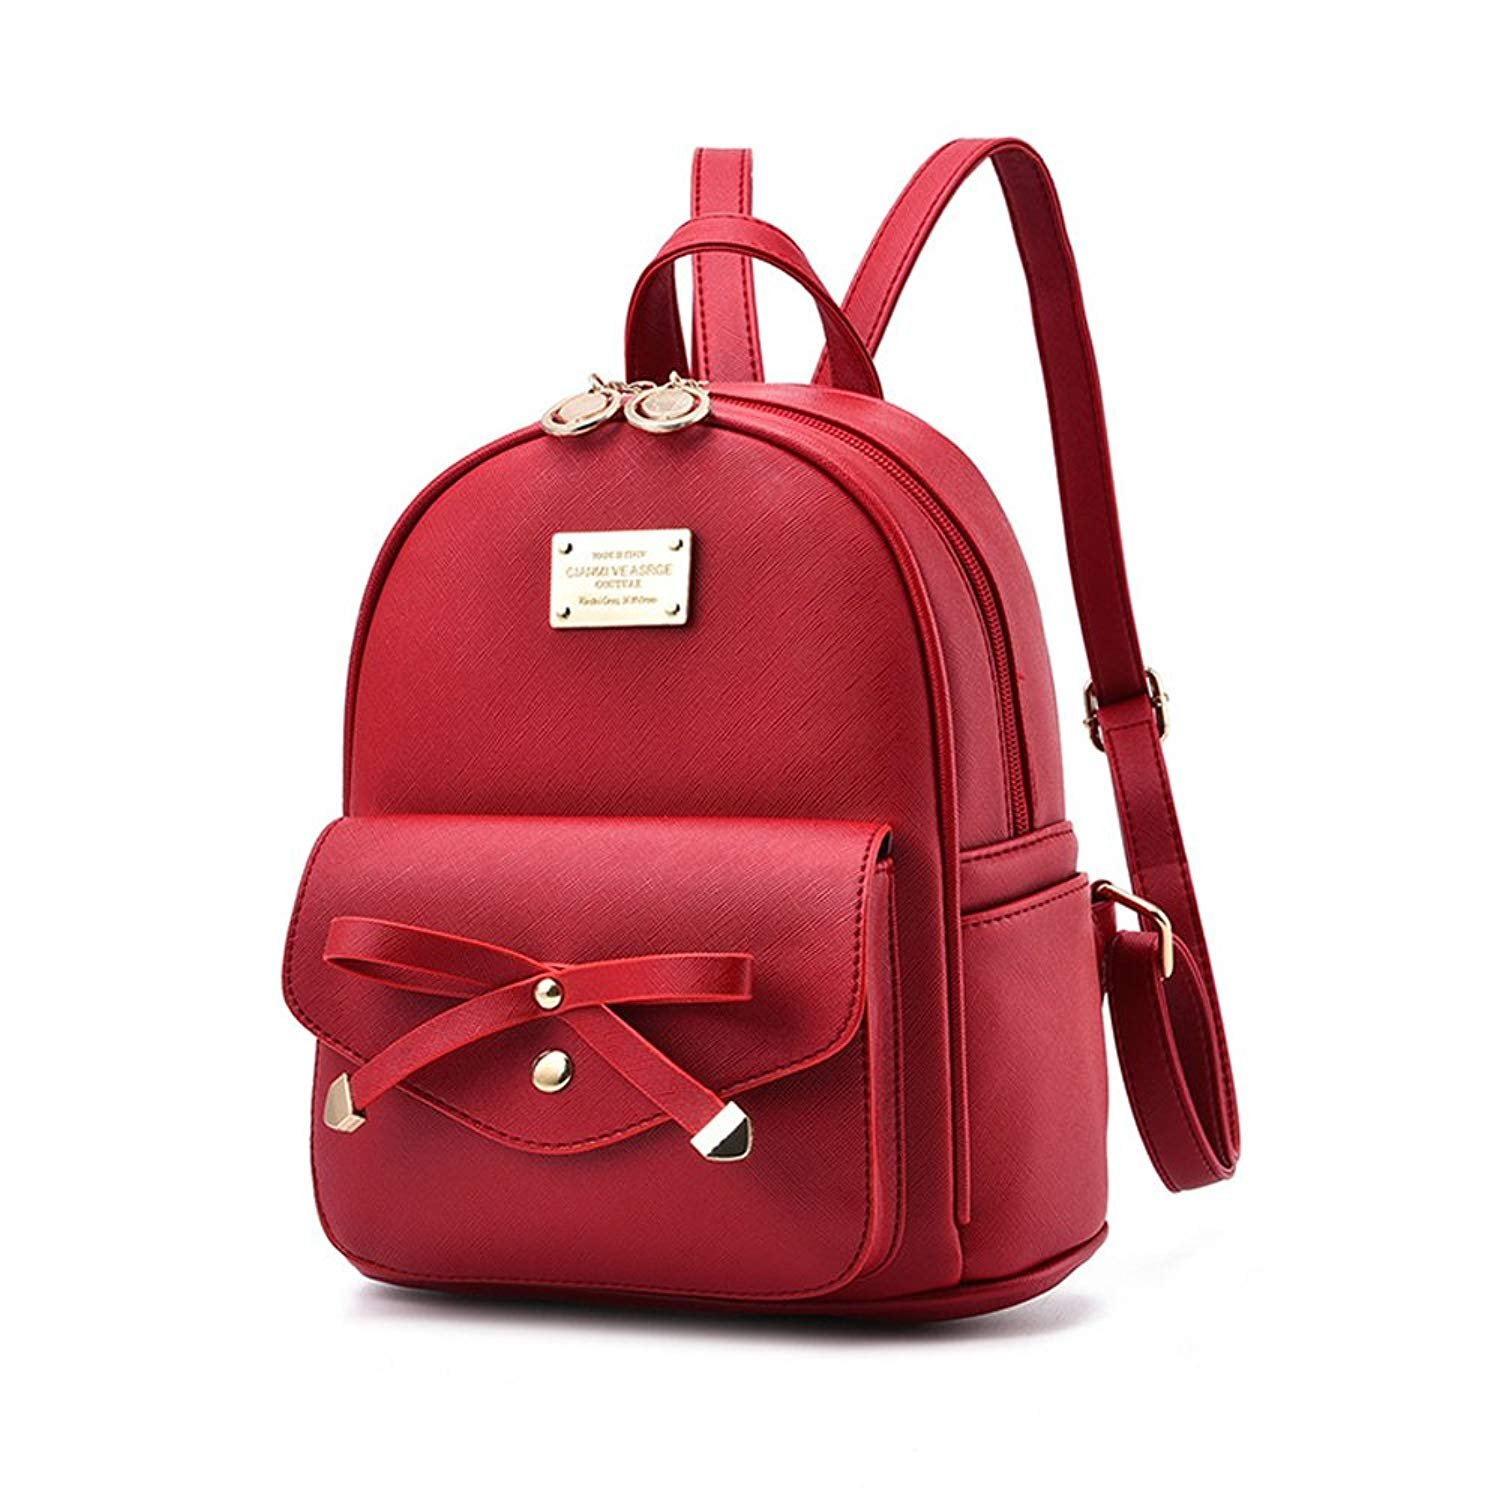 Girls Leather Mini Backpack Purse Cute Bowknot Fashion Small Backpacks Purses for Teen Women